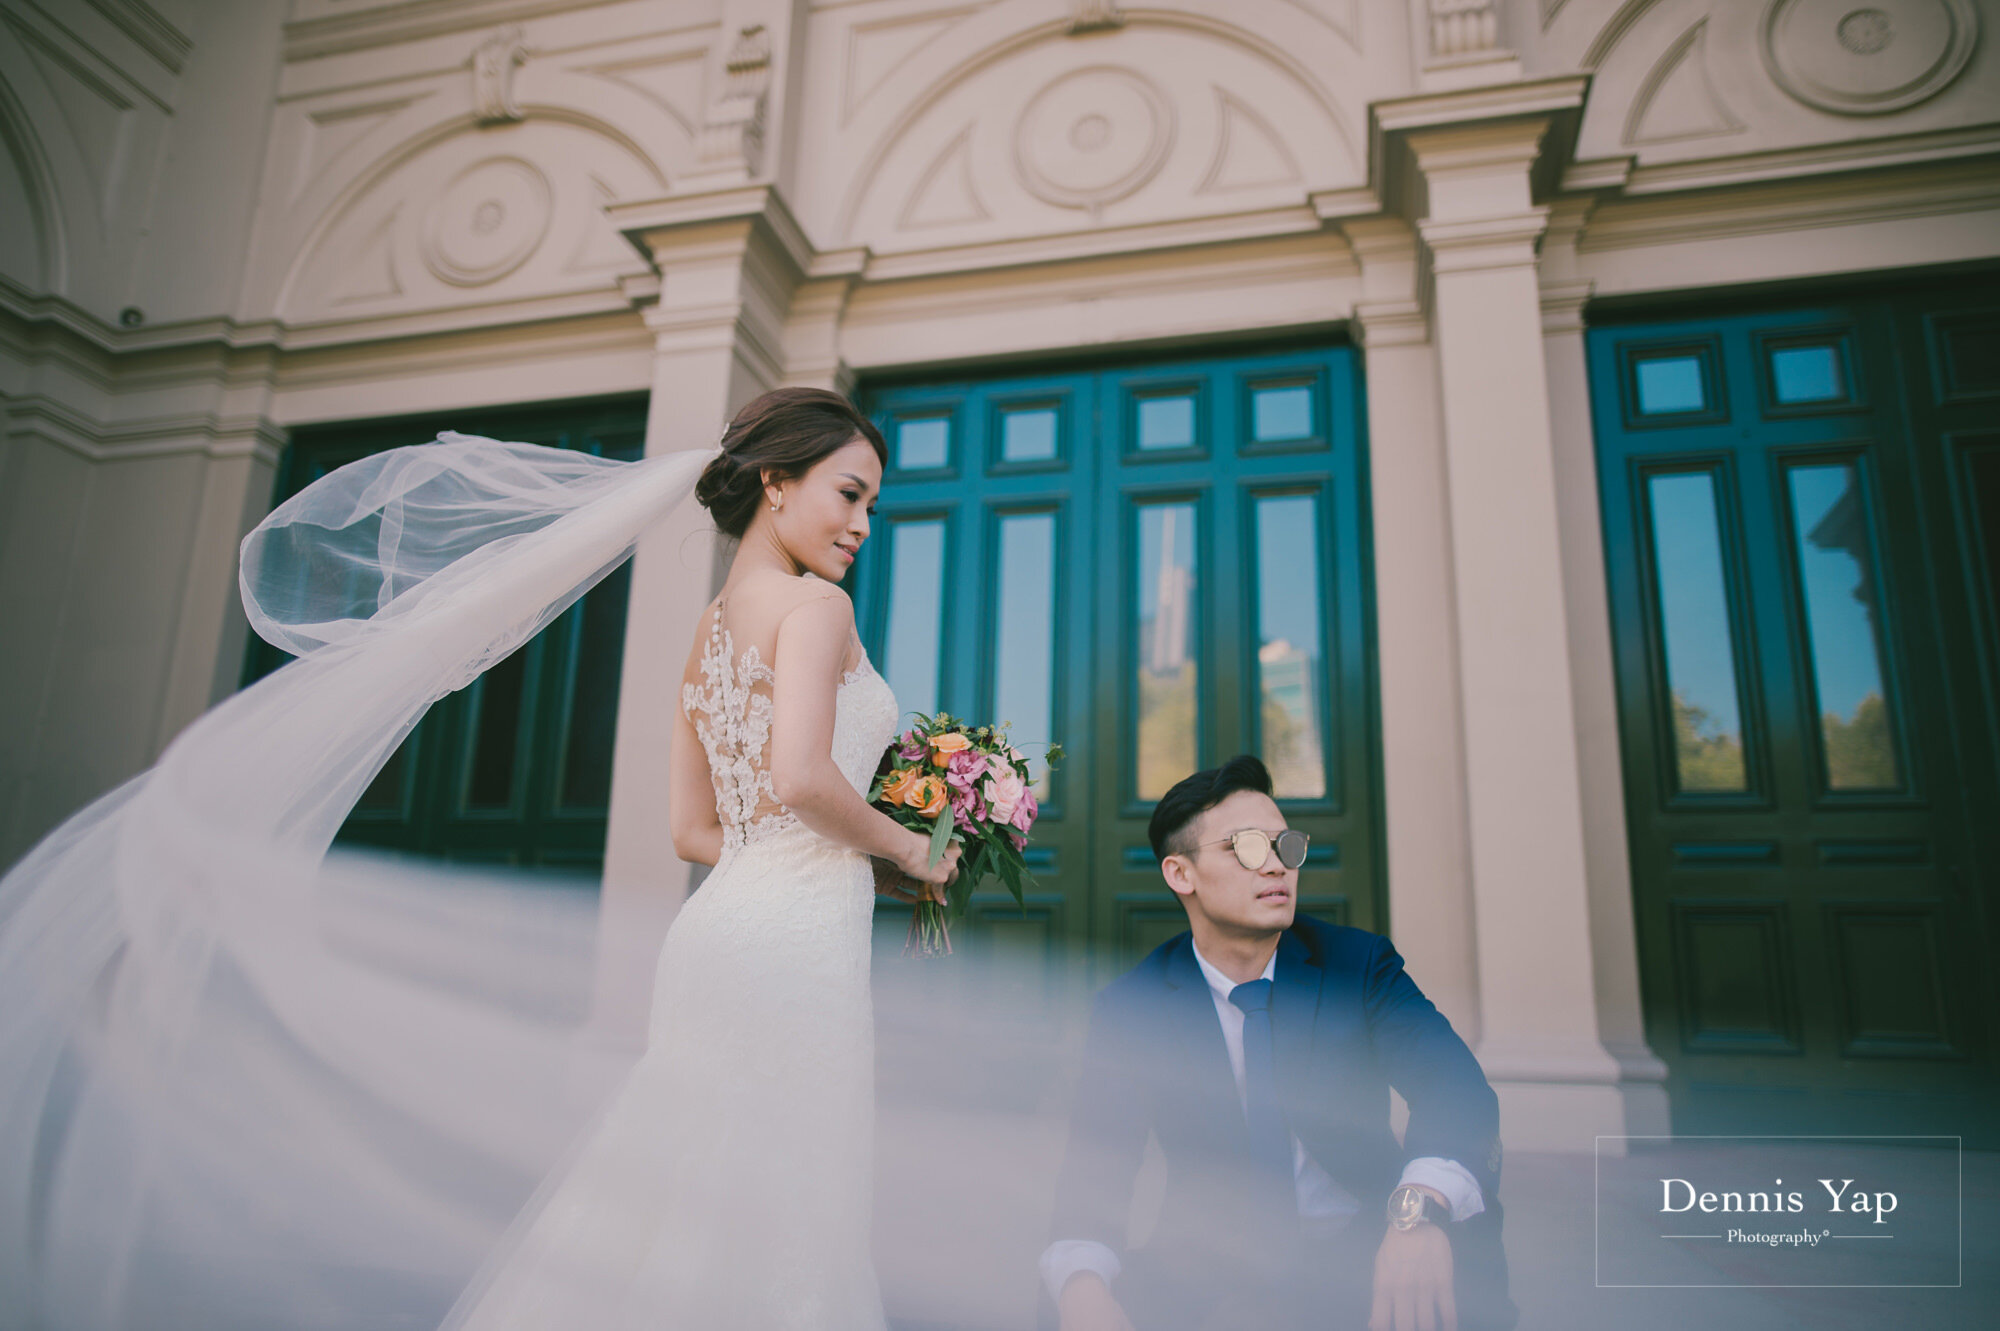 kevin junie melbourne pre wedding lifestyle natural dennis yap photography malaysia top wedding photographer-7.jpg